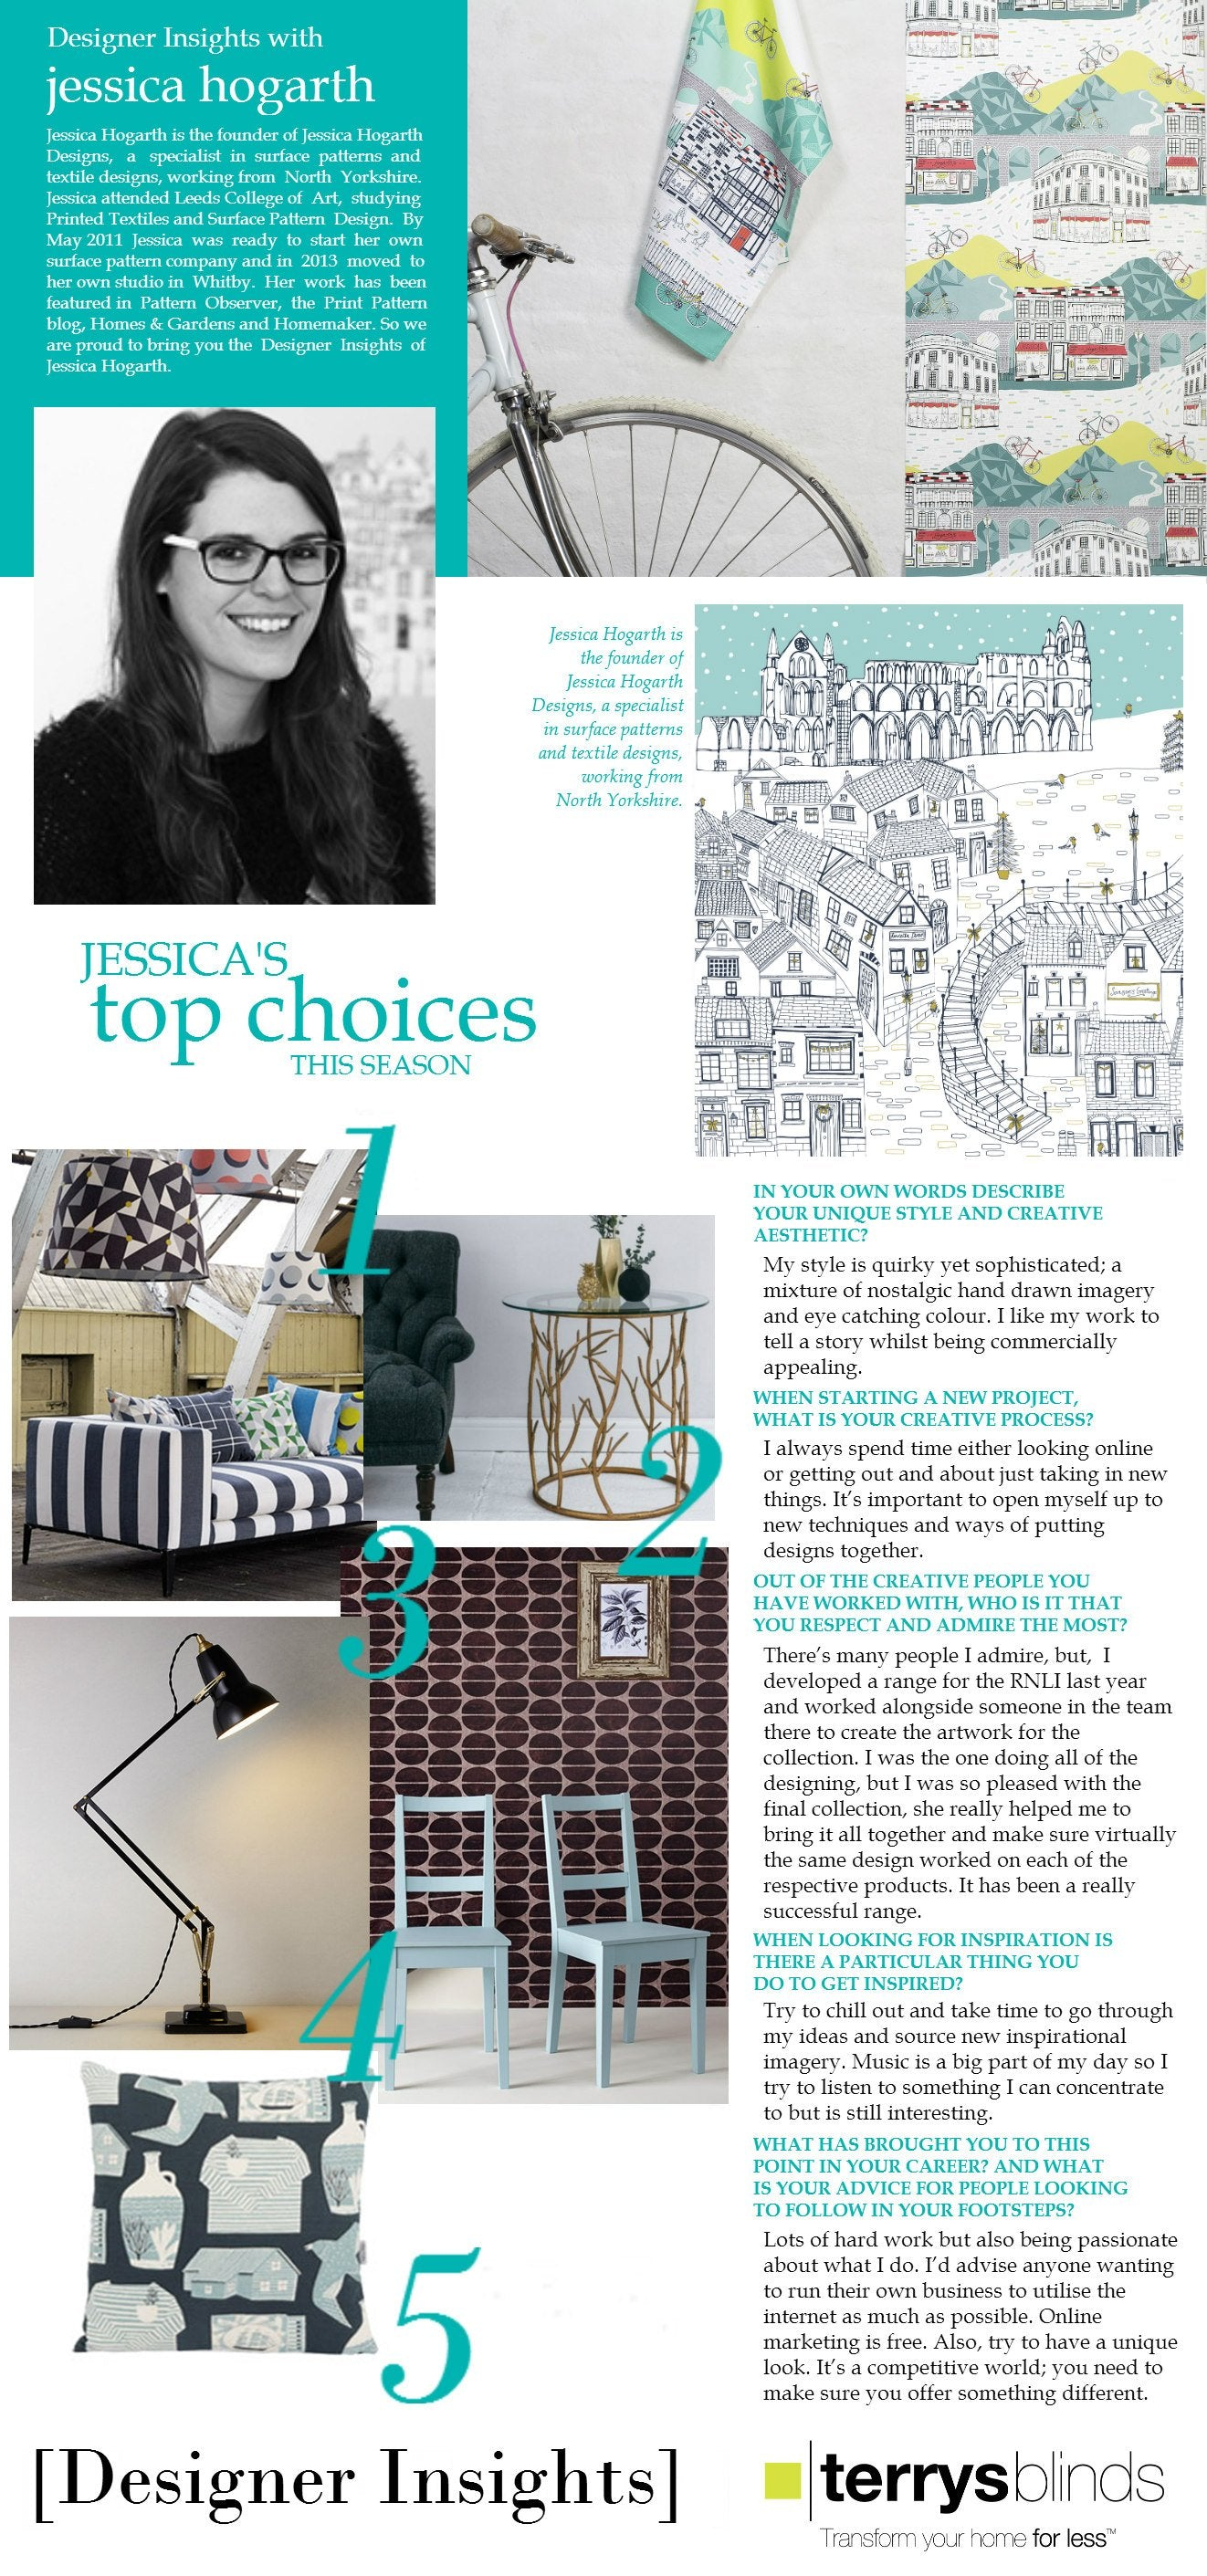 Designer Insights - Jessica Hogarth